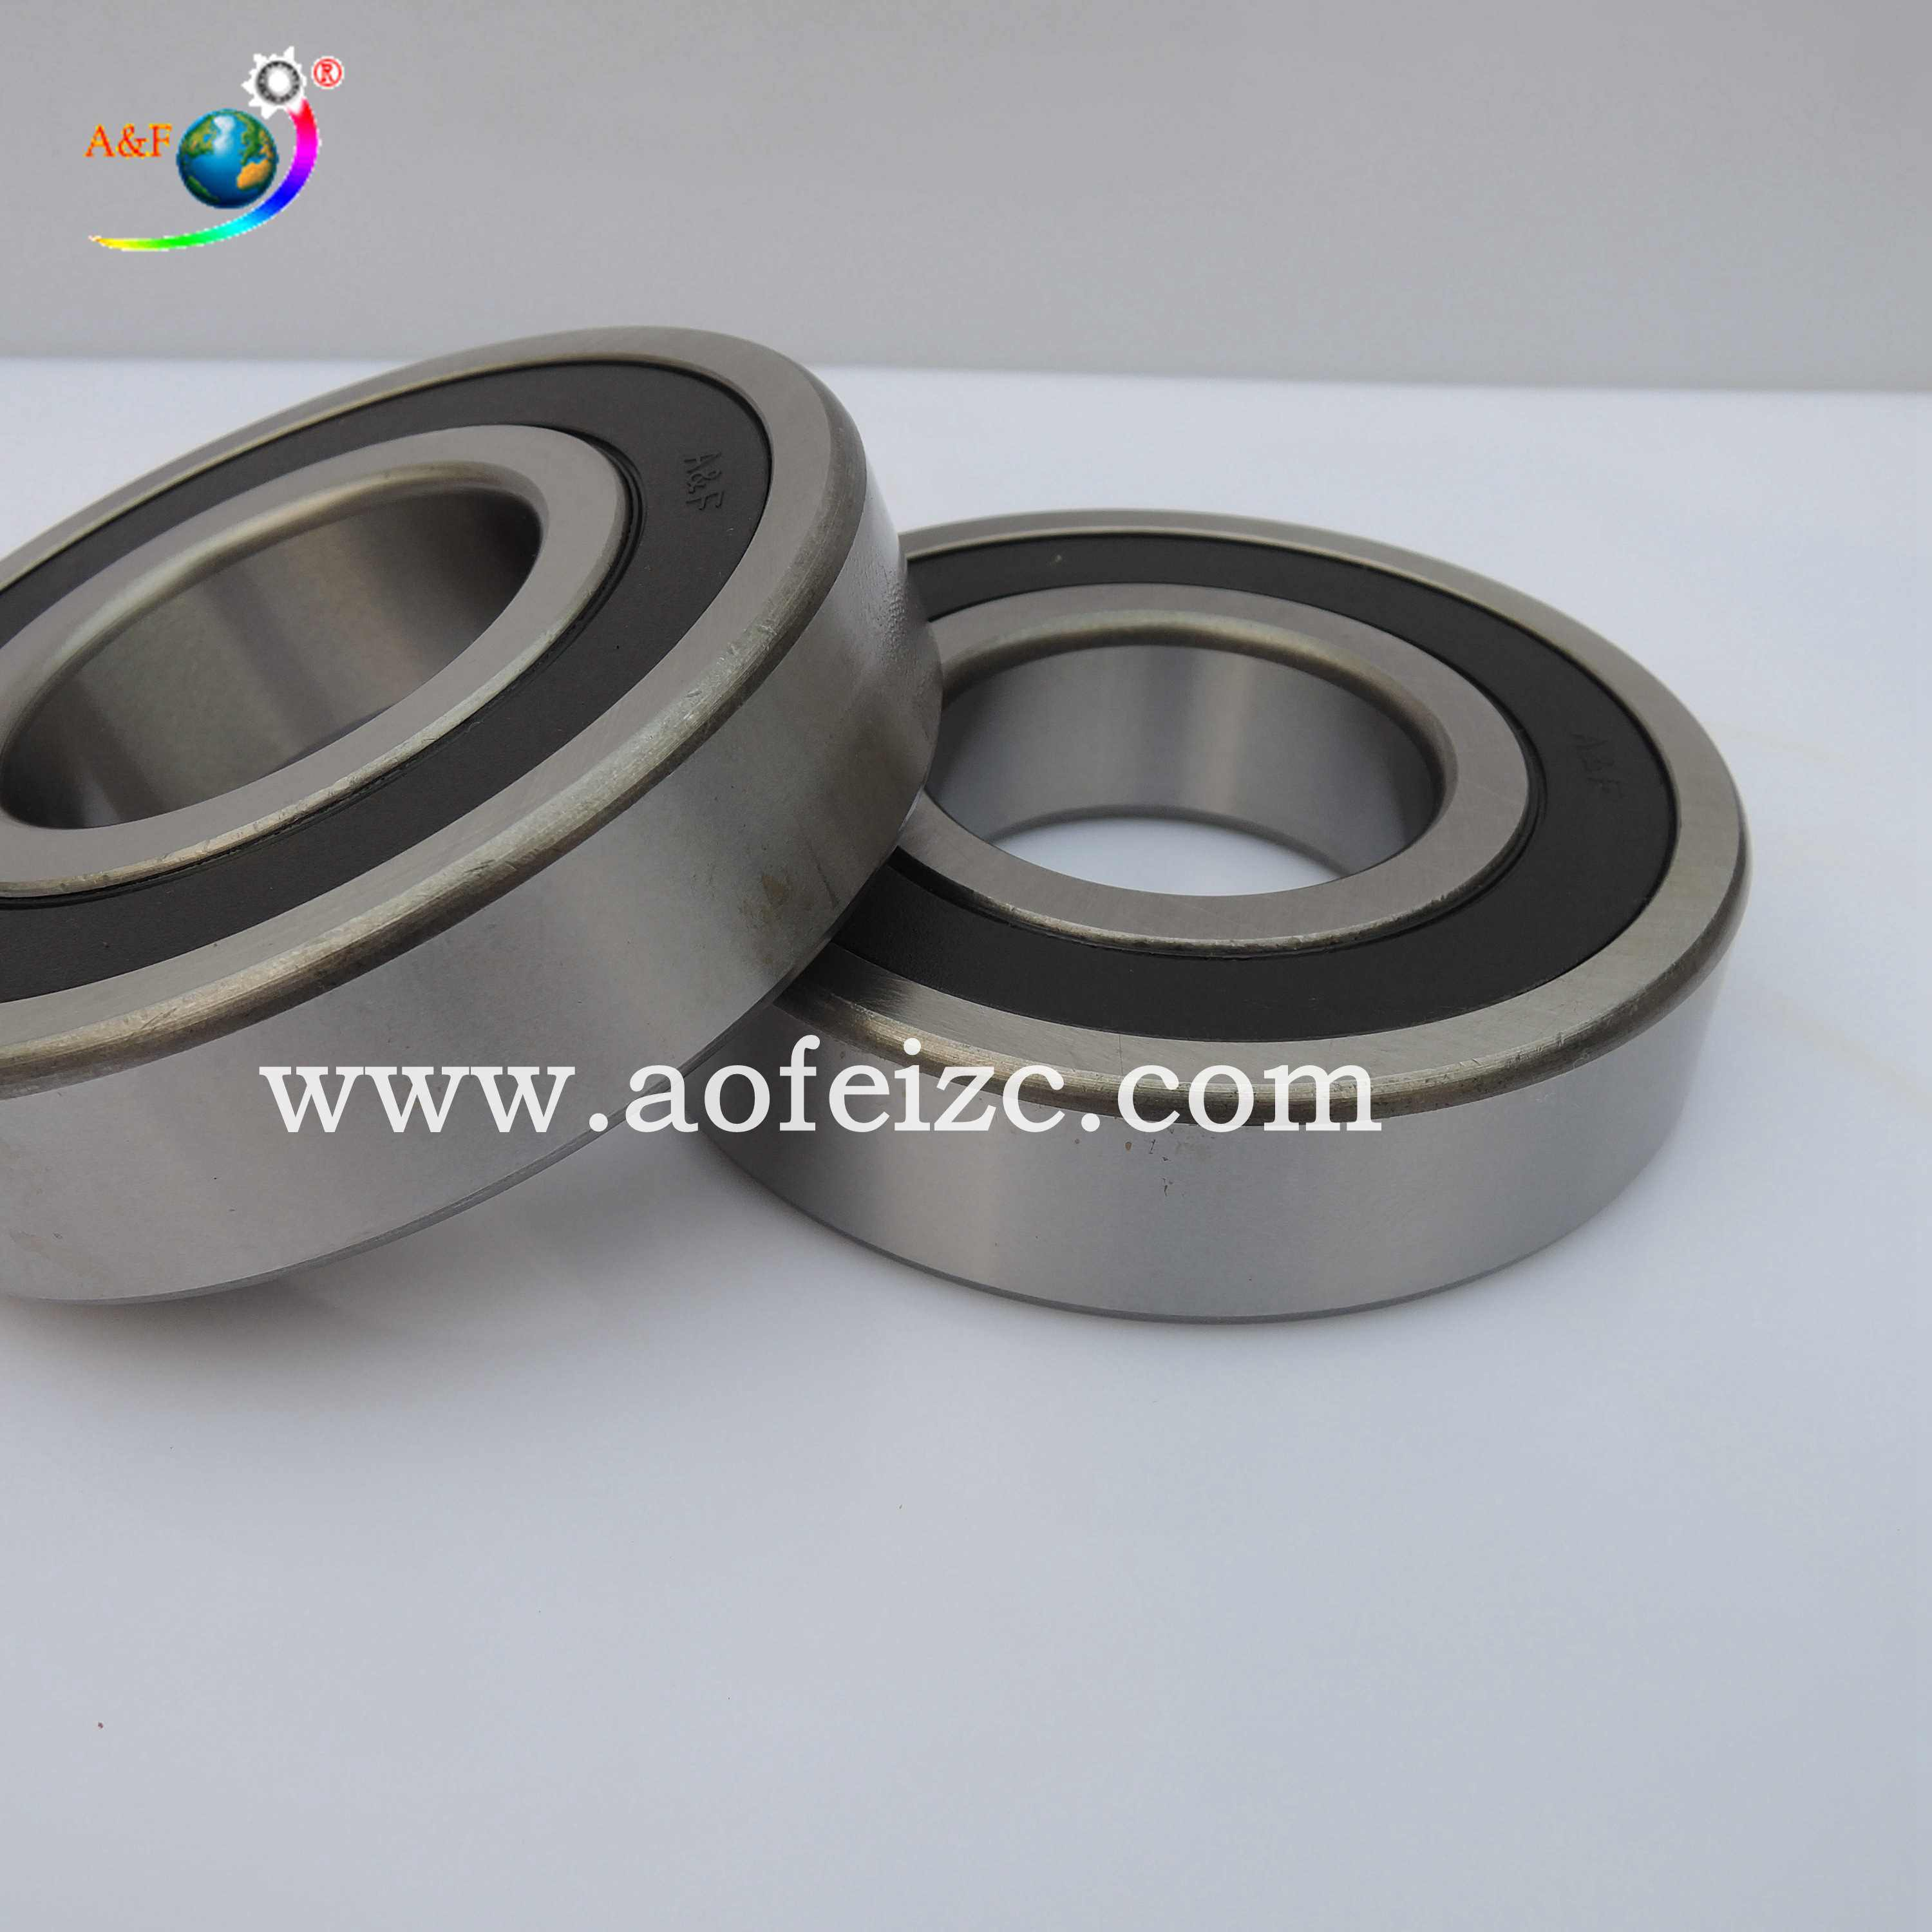 A&F factory Bearings Deep Groove Ball Bearing 6410-2RS Stainless Steel